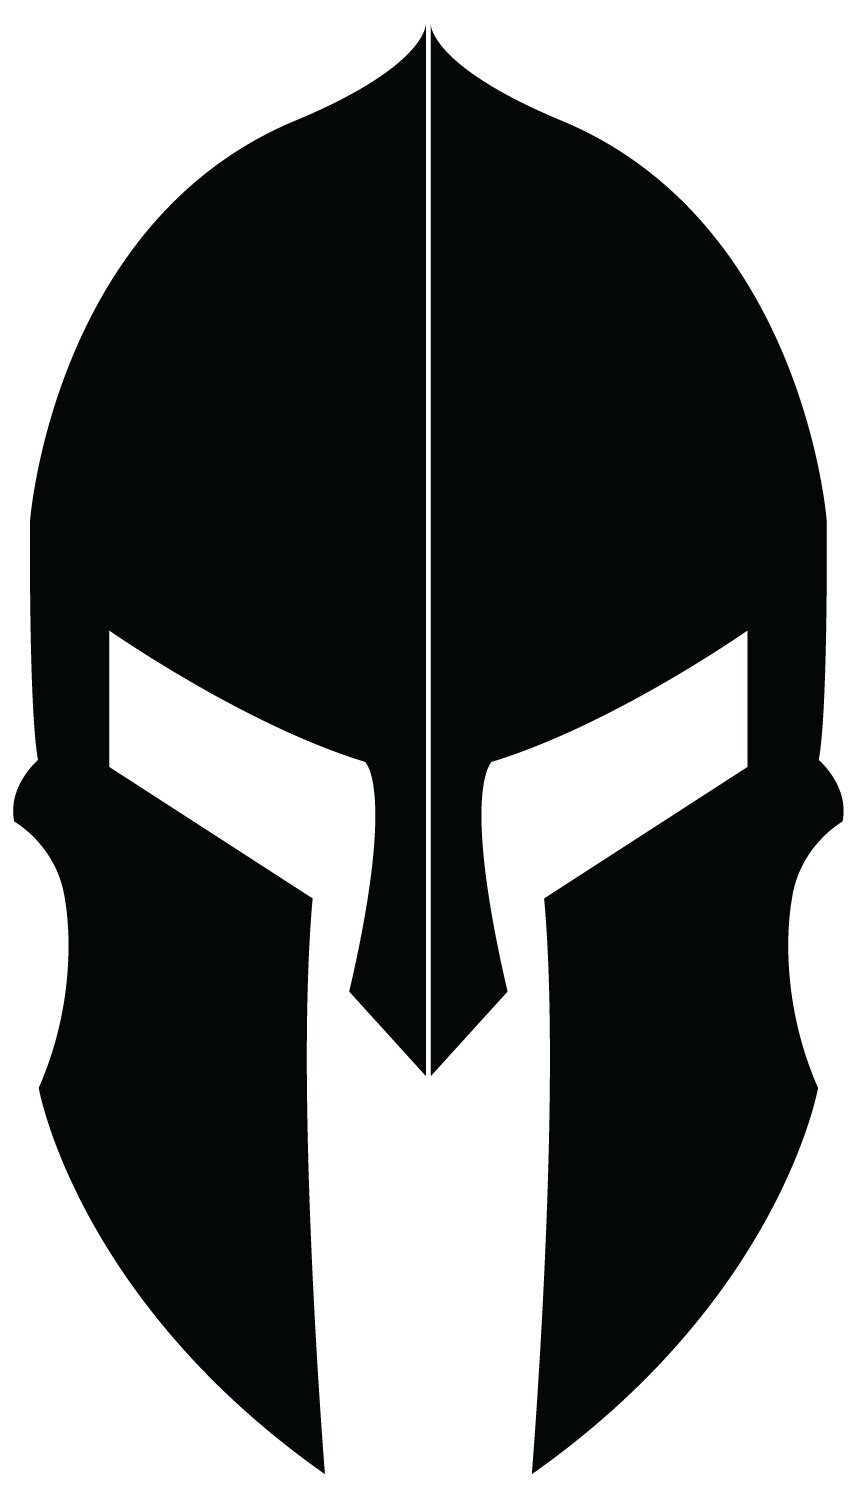 Logo design for Spartan Helmet | Portfolio | Pinterest ...